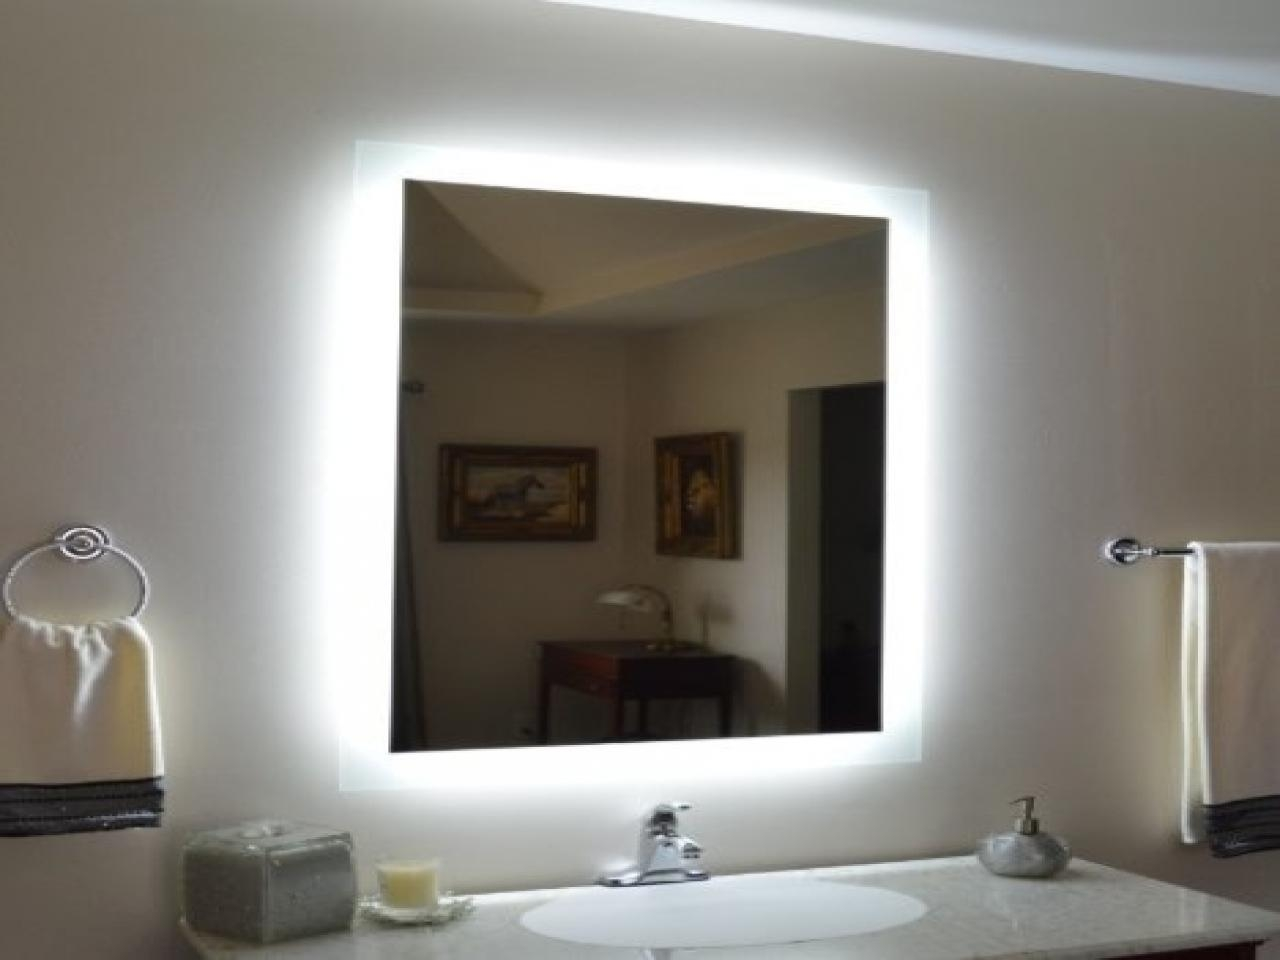 Lighted Vanity Mirror Wall Mount Ideas — The Homy Design Regarding Lighted Vanity Wall Mirrors (Image 11 of 20)